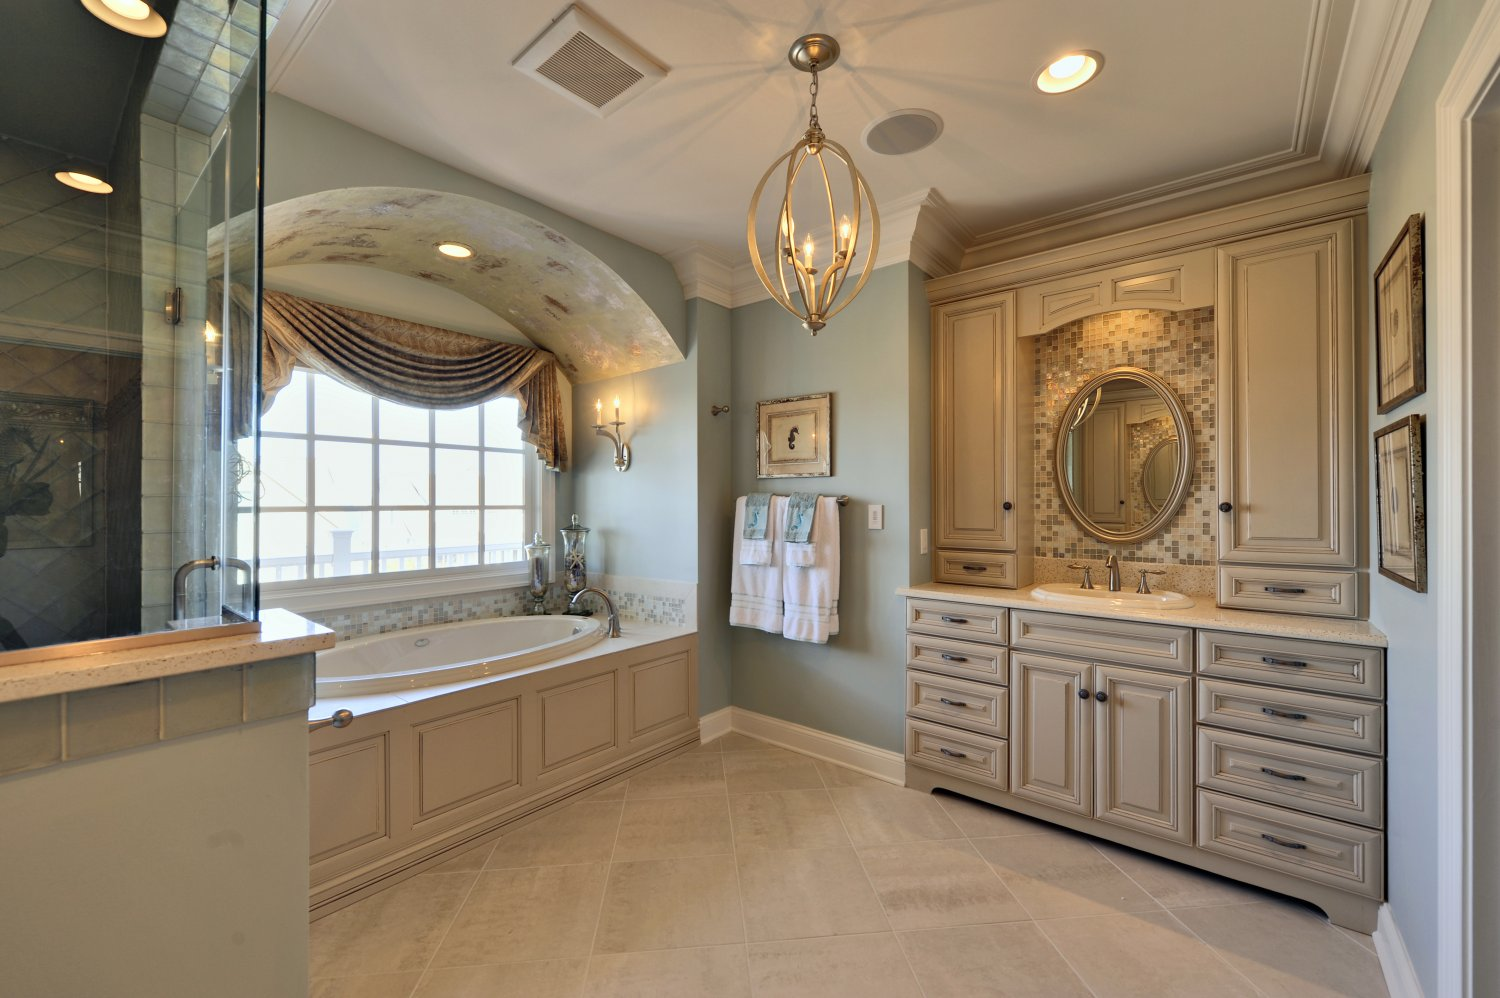 Home Design Ideas Bathroom: Photo Gallery Of Custom Delaware New Homes